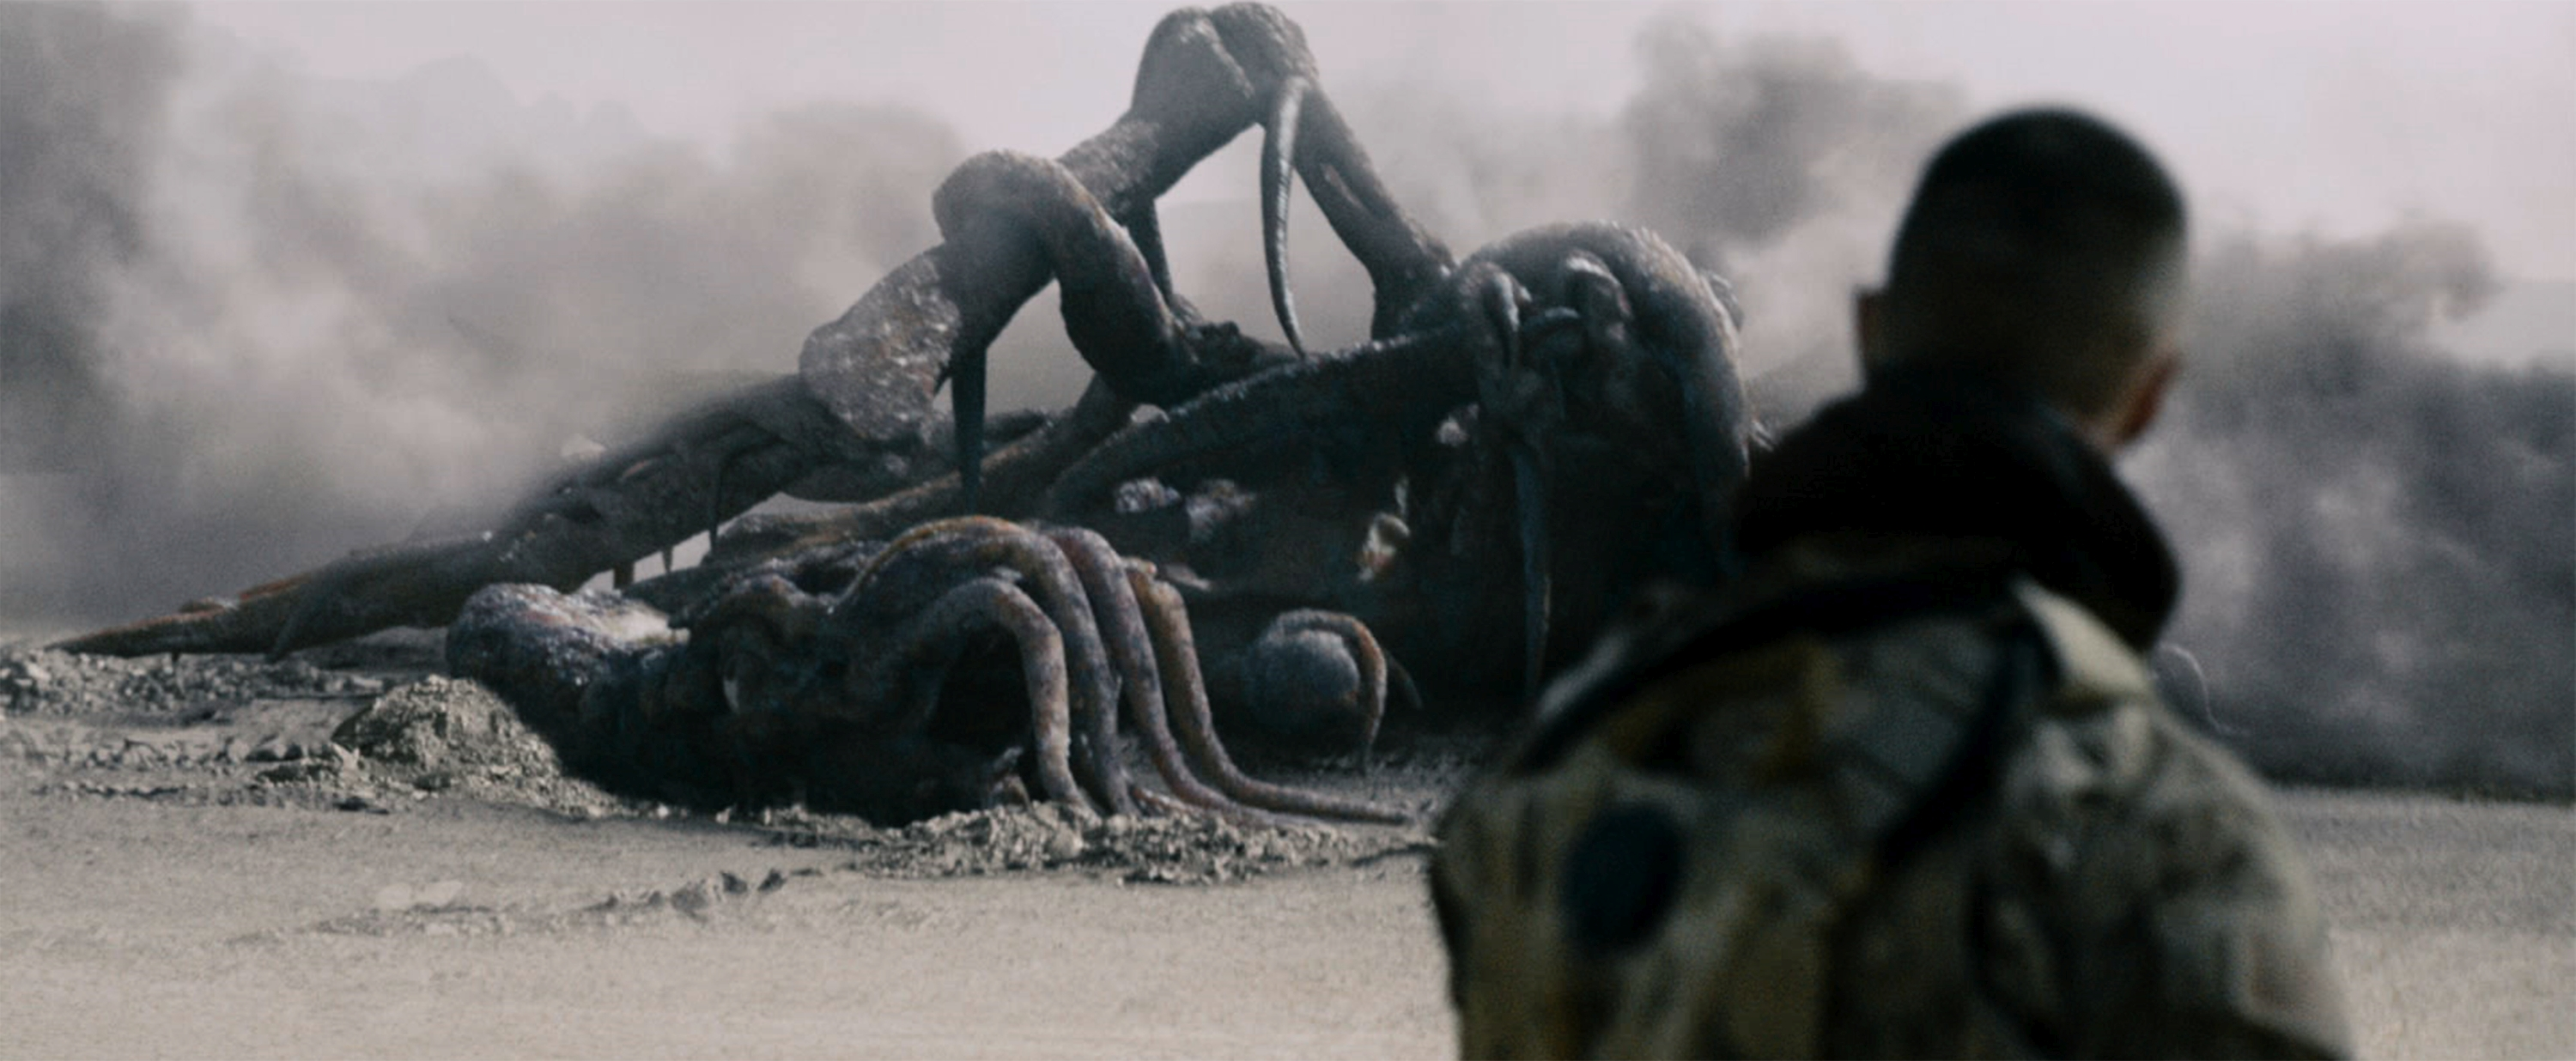 mars red planet movie monsters - photo #26